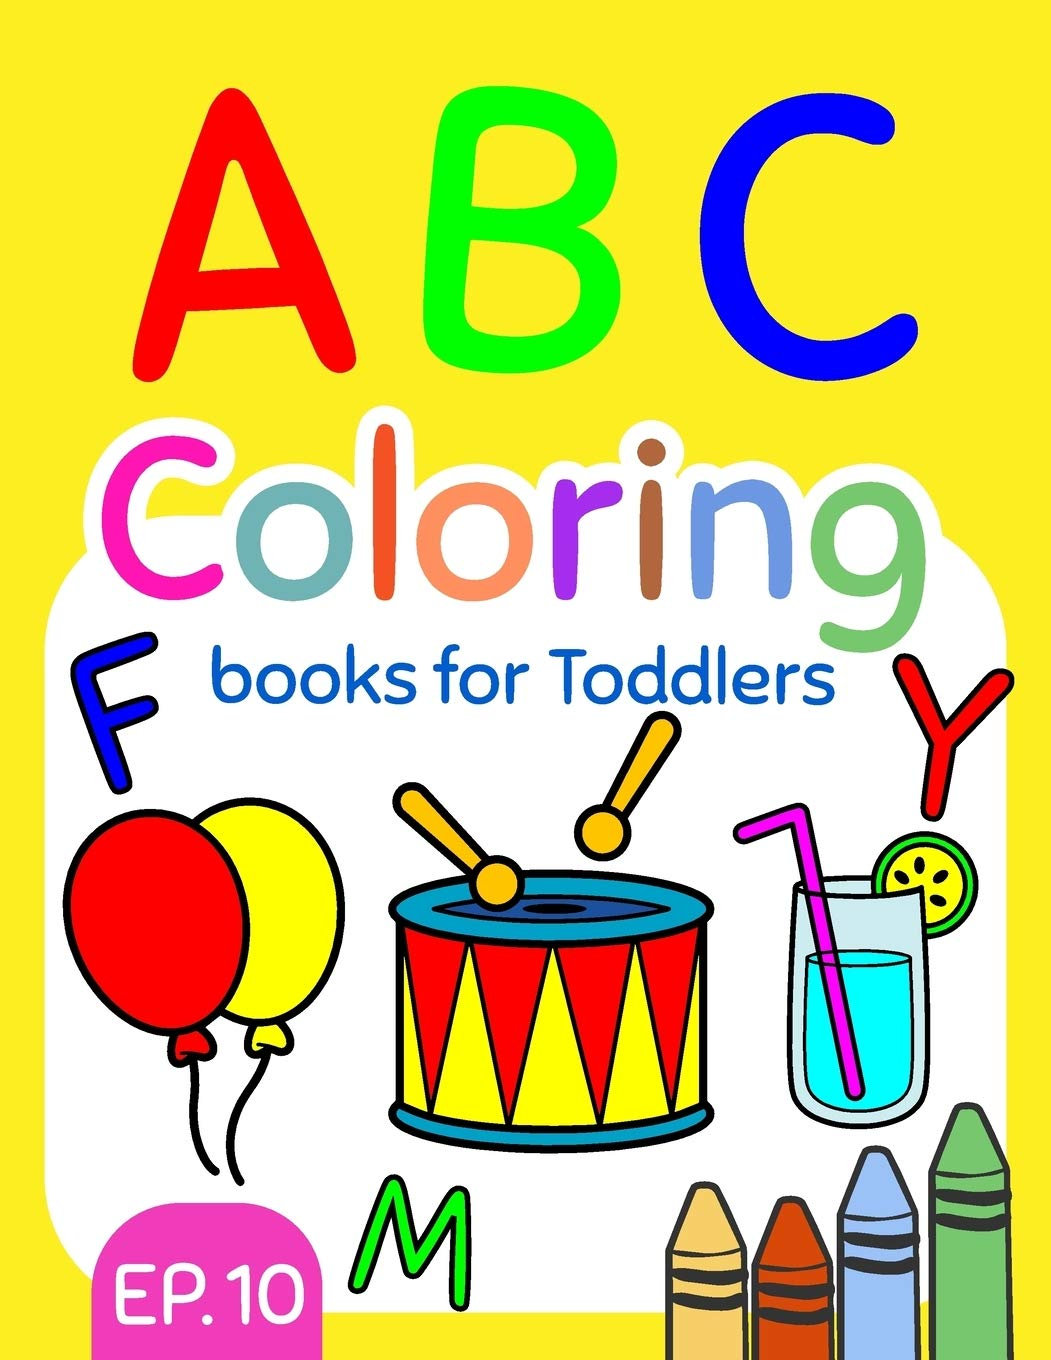 Abc Coloring Books For Toddlers Ep 10 A To Z Coloring Sheets Jumbo Alphabet Coloring Pages For Preschoolers Abc Coloring Sheets For Kids Ages 2 4 And Kindergarten Big A To Z Coloring